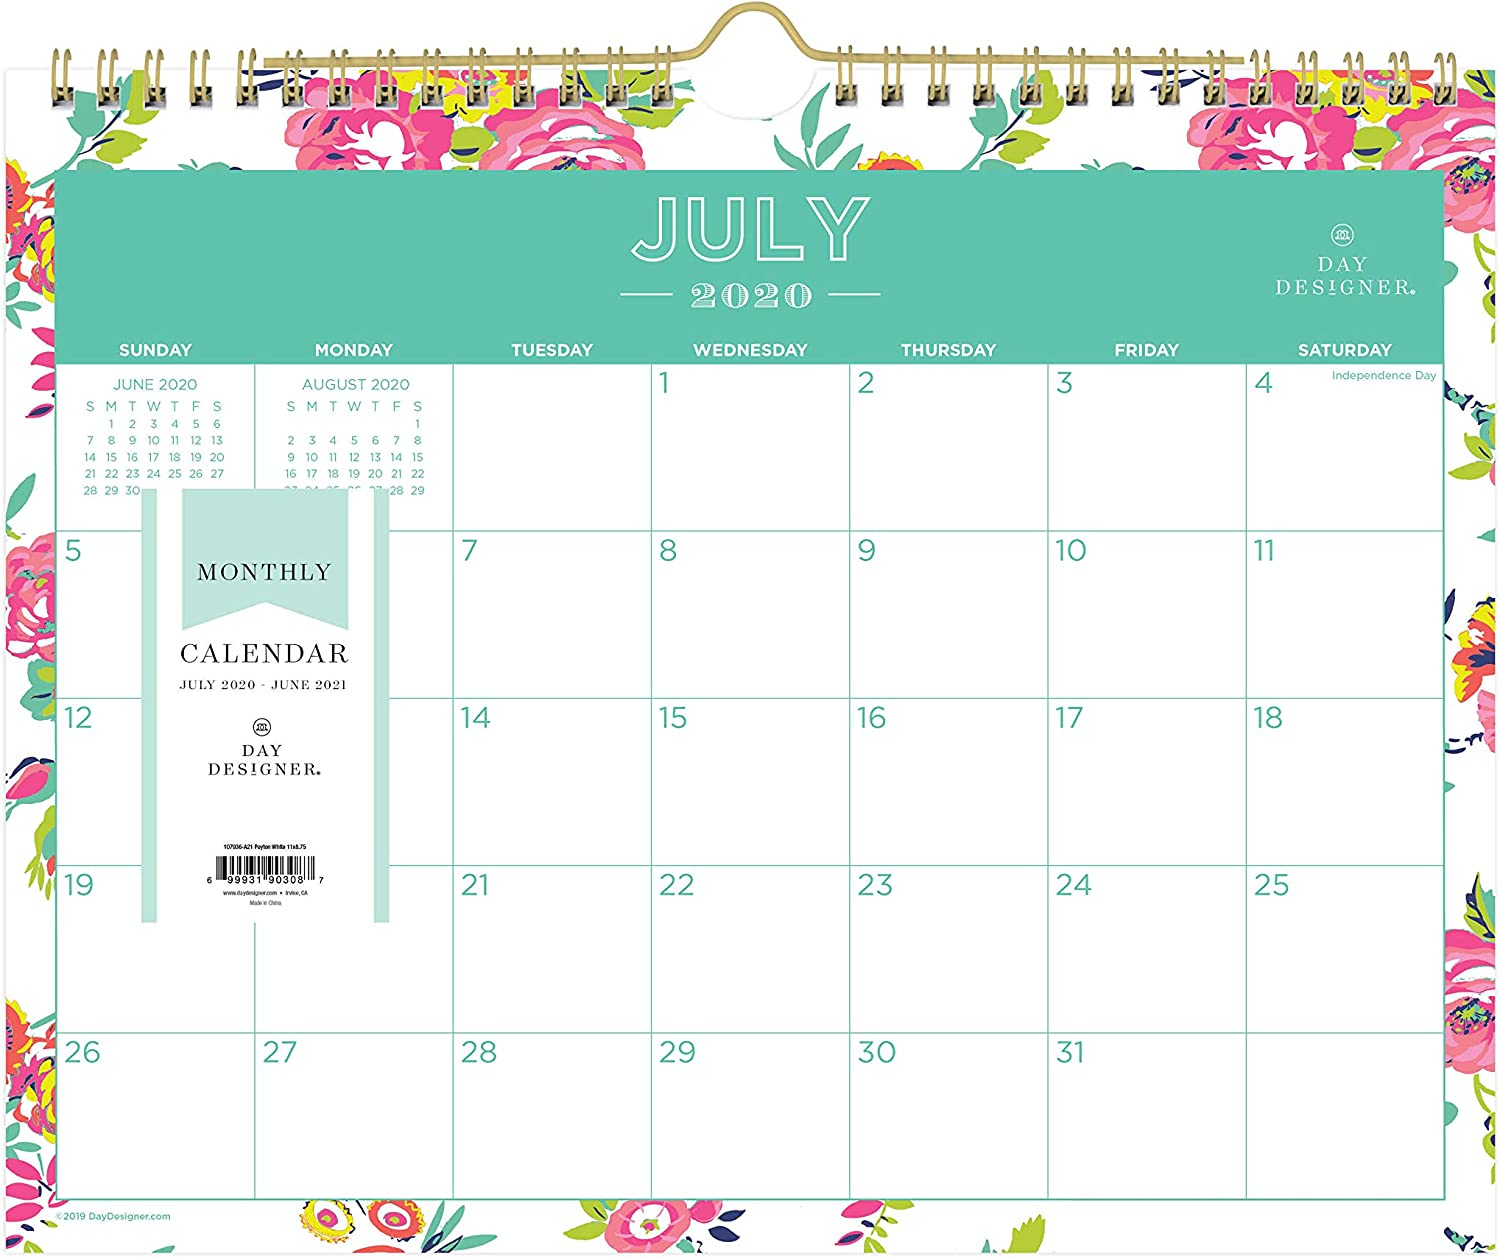 "Day Designer for Blue Sky 2020-2021 Academic Year Monthly Wall Calendar, Twin-Wire Binding, 11"" x 8.75"", Peyton White (107936-A21)"